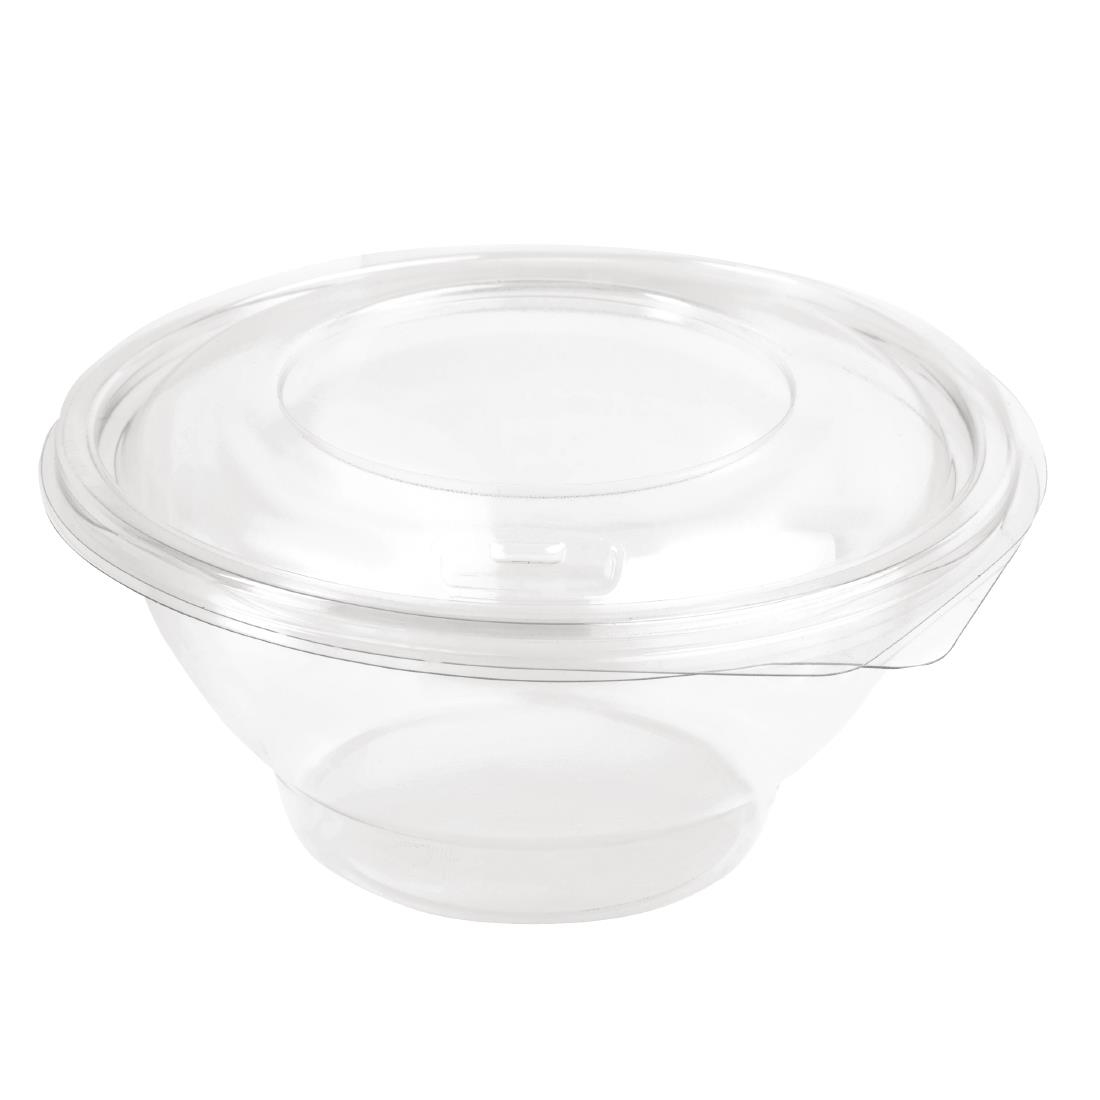 Image of Faerch Contour Recyclable Deli Bowls With Lid 750ml / 26oz (Pack of 200) Pack of 200